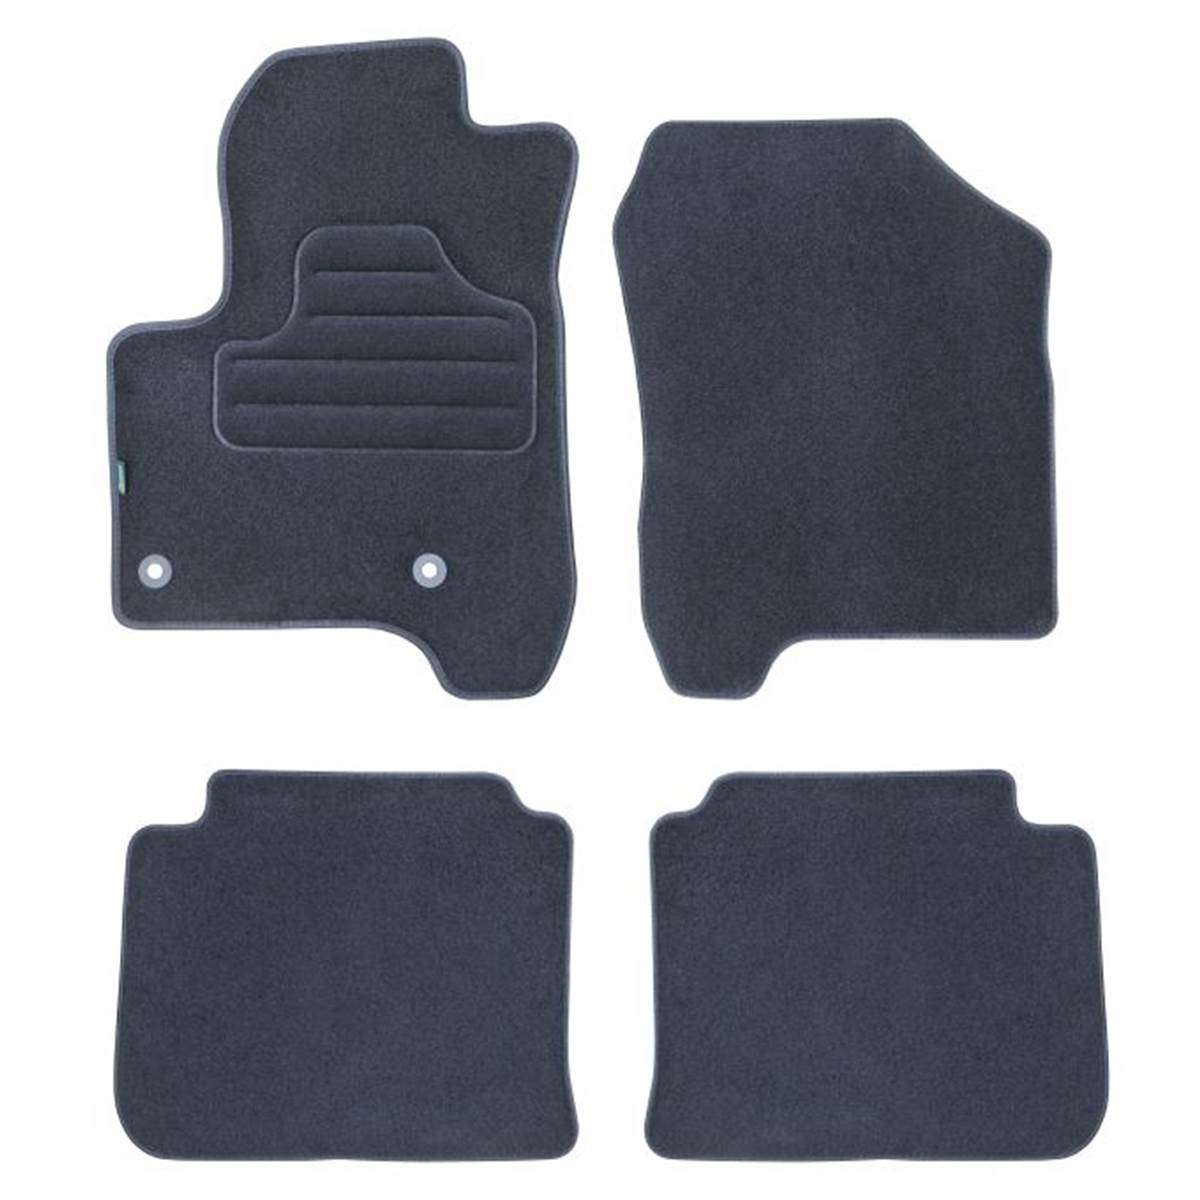 tapis c4 cactus citroen c4 cactus tapis de sol caoutchouc tapis citro n c4 cactus caoutchouc. Black Bedroom Furniture Sets. Home Design Ideas